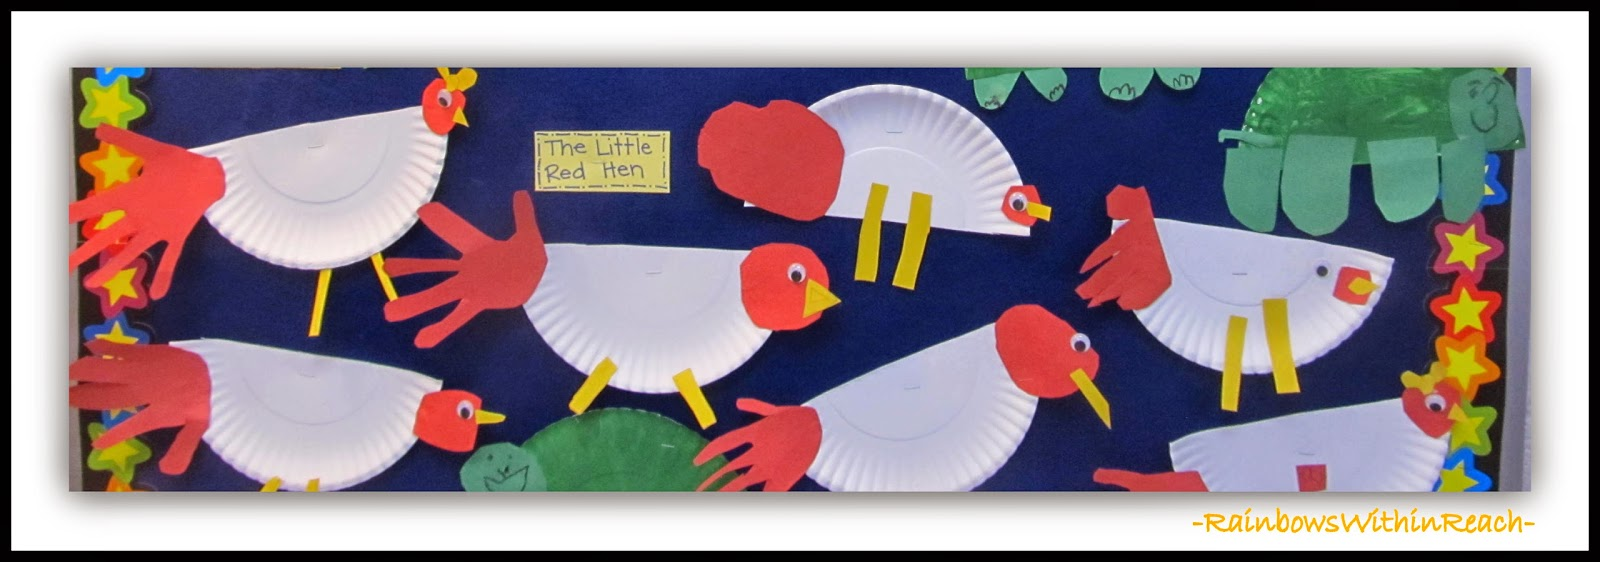 Chickens made with Paper Plate and Cut Hand Print at RainbowsWithinReach